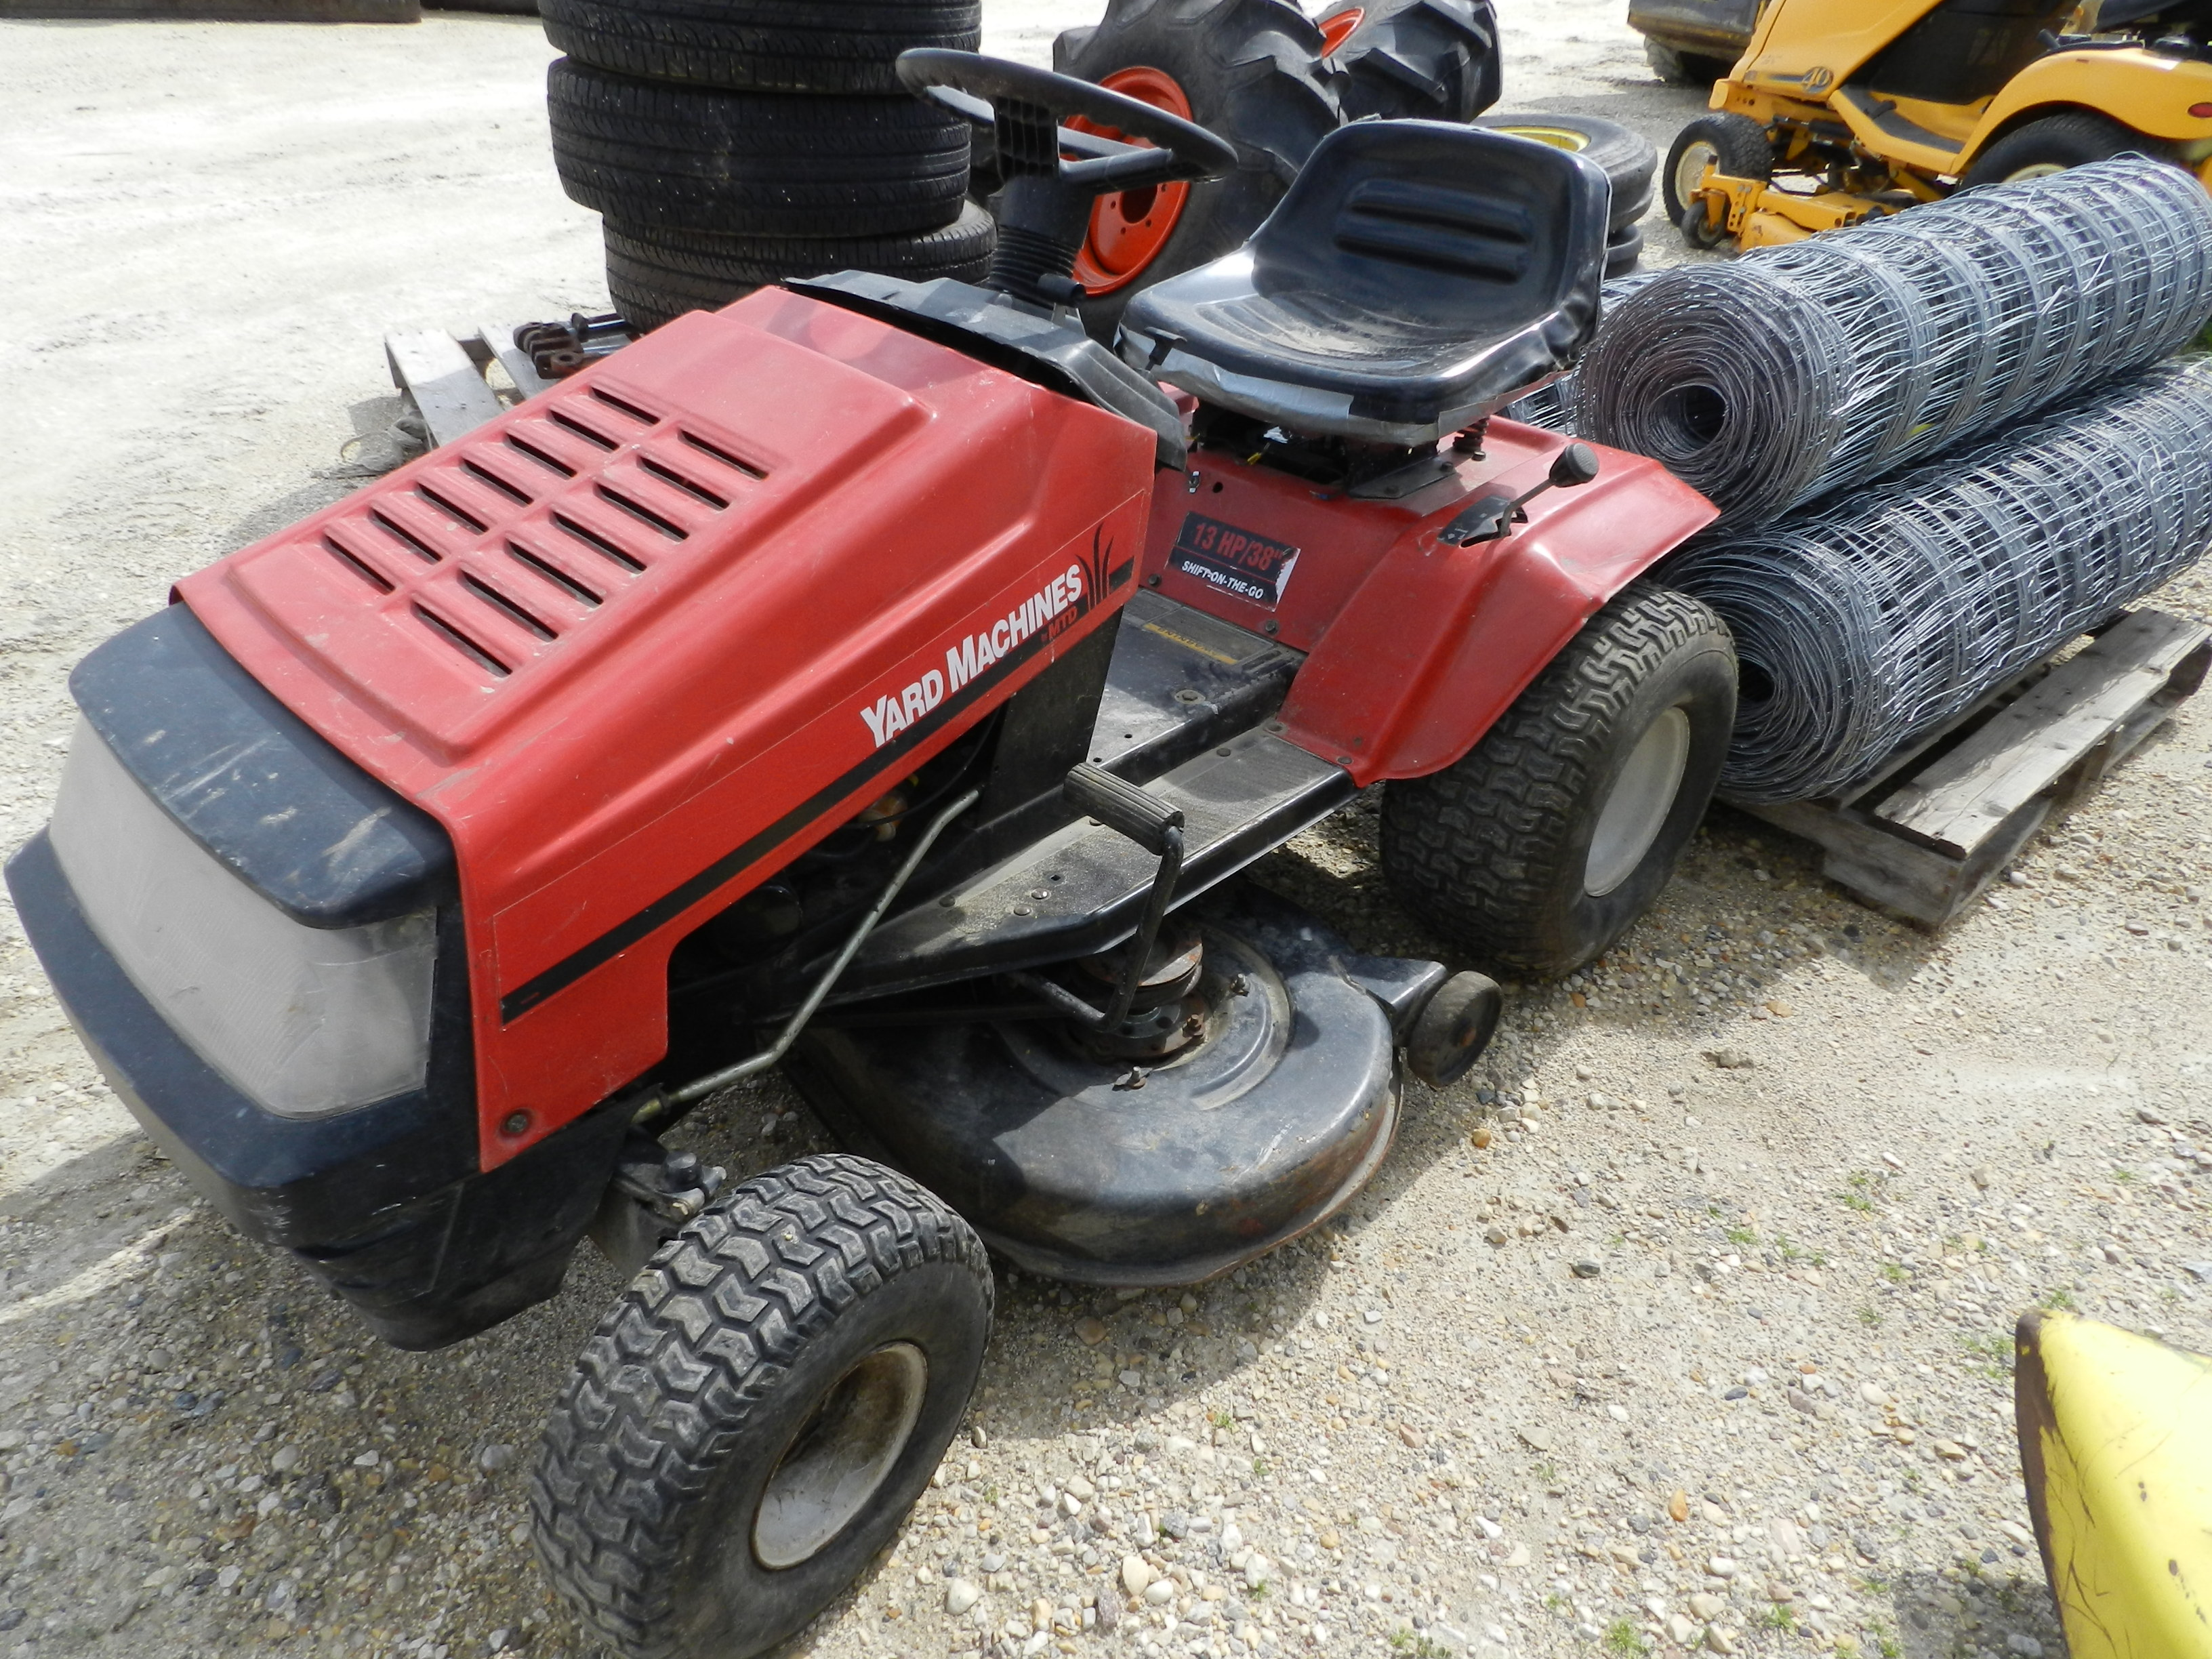 Yard Machine Lawn Mower Mtd Yard Machines Lawn Tractor Pictures To Pin On